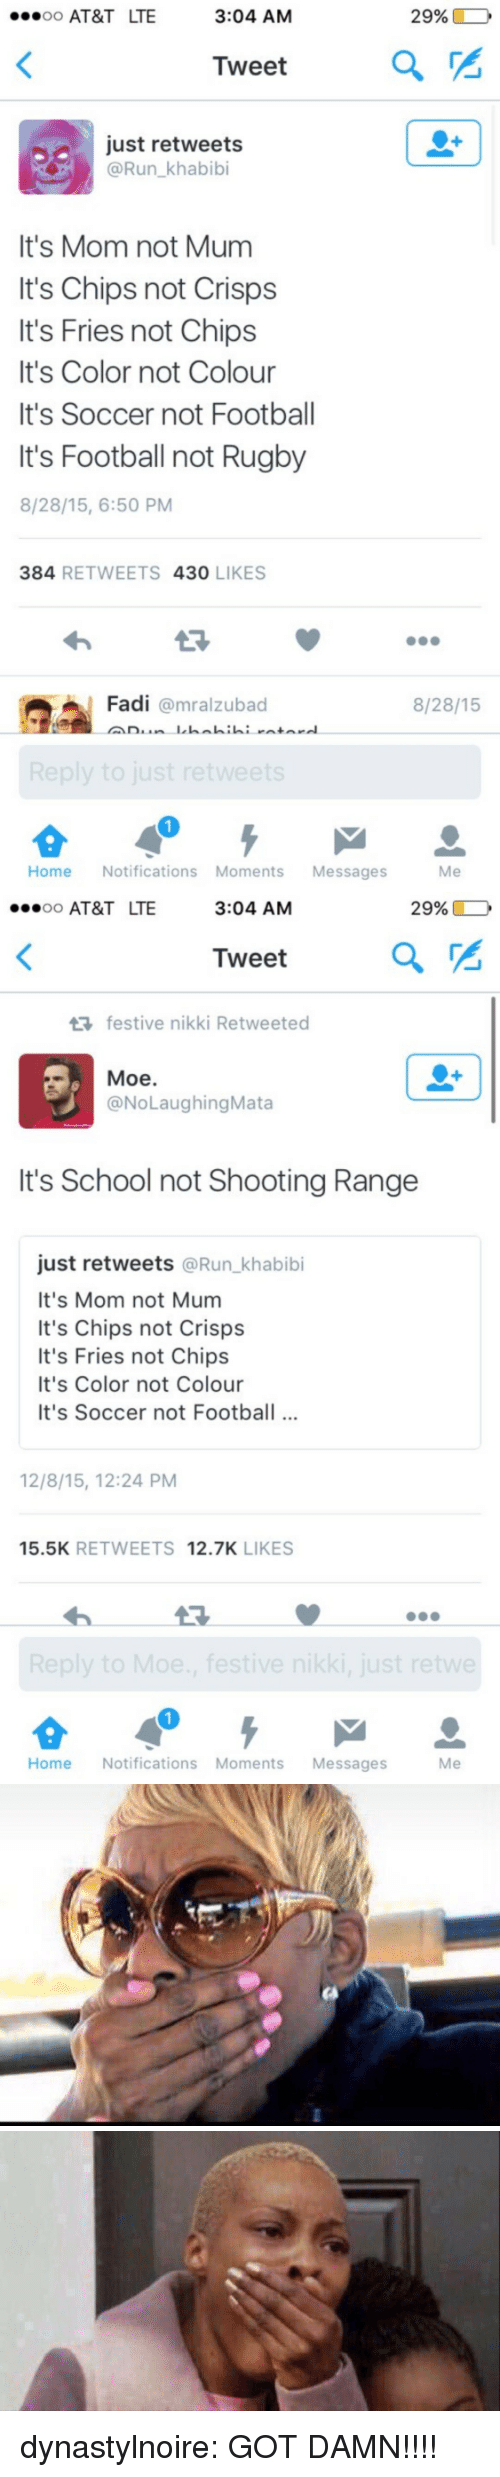 Football, Run, and School: oo AT&T LTE  3:04 AM  29%)  o  Tweet  a  just retweets  @Run khabibi  It's Mom not Mum  It's Chips not Crisps  It's Fries not Chips  It's Color not Colour  It's Soccer not Football  It's Football not Rugby  8/28/15, 6:50 PM  384 RETWEETS 430 LIKES  Fadi @mralzubad  8/28/15  Home Notifications Moments Messages  Me   oo AT&T LTE  3:04 AM  29%)  o  Tweet  a  festive nikki Retweeted  Moe.  @NoLaughingMata  It's School not Shooting Range  just retweets @Run_khabibi  It's Mom not Mum  It's Chips not Crisps  It's Fries not Chips  It's Color not Colour  It's Soccer not Footbal  12/8/15, 12:24 PM  15.5K RETWEETS 12.7K LIKES  Home Notifications Moments Messages  Me dynastylnoire:  GOT DAMN!!!!